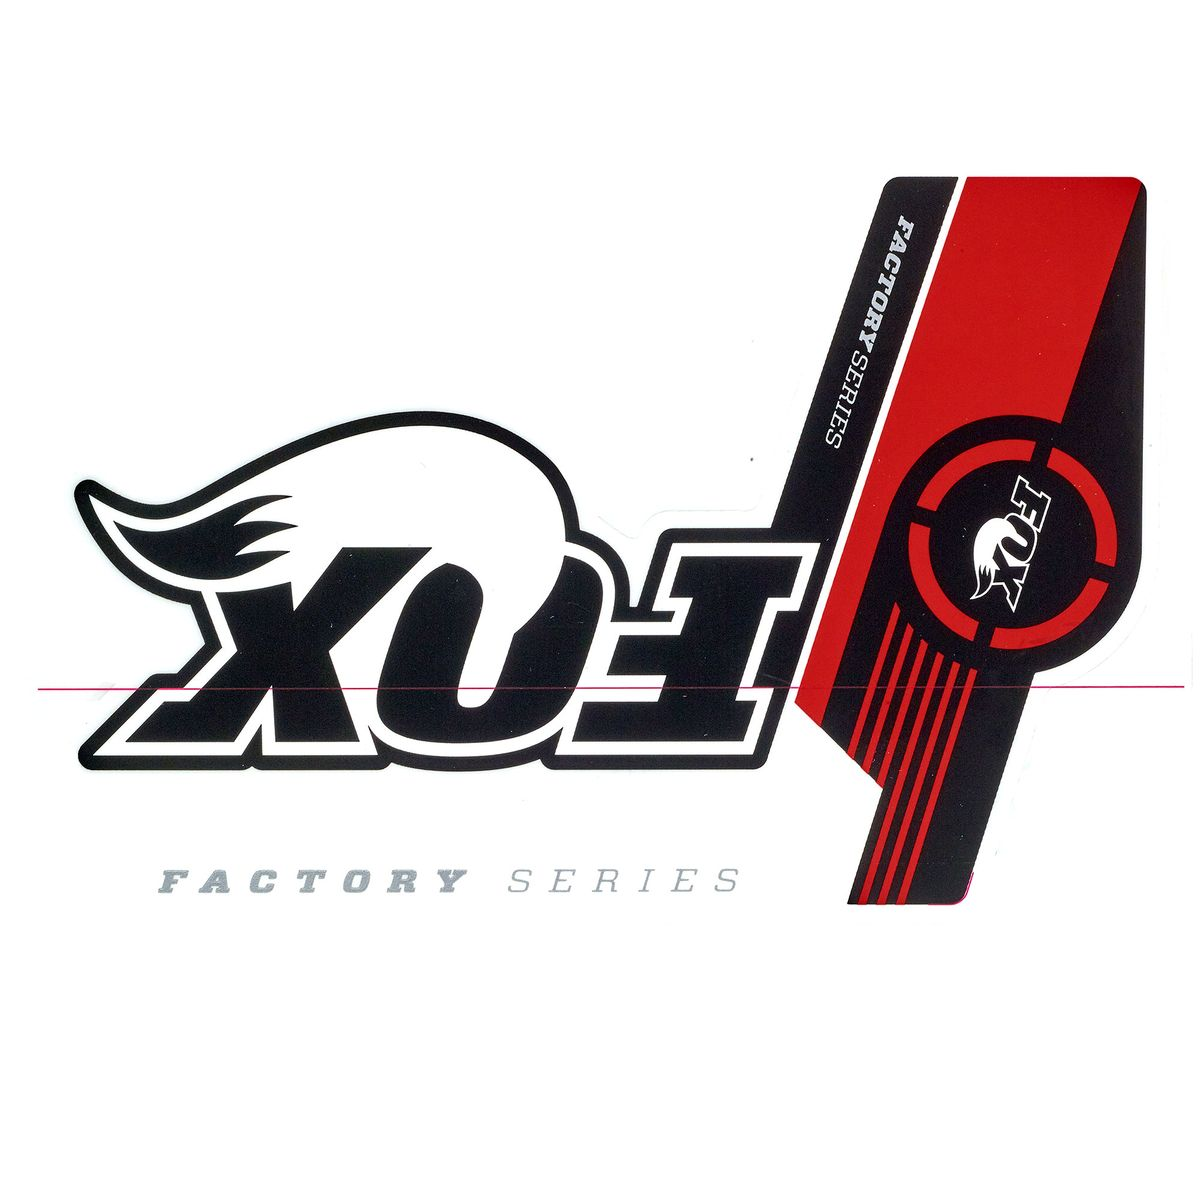 Fox FOX Factory Series Stickers / Decals for 36mm Forks | Gafler